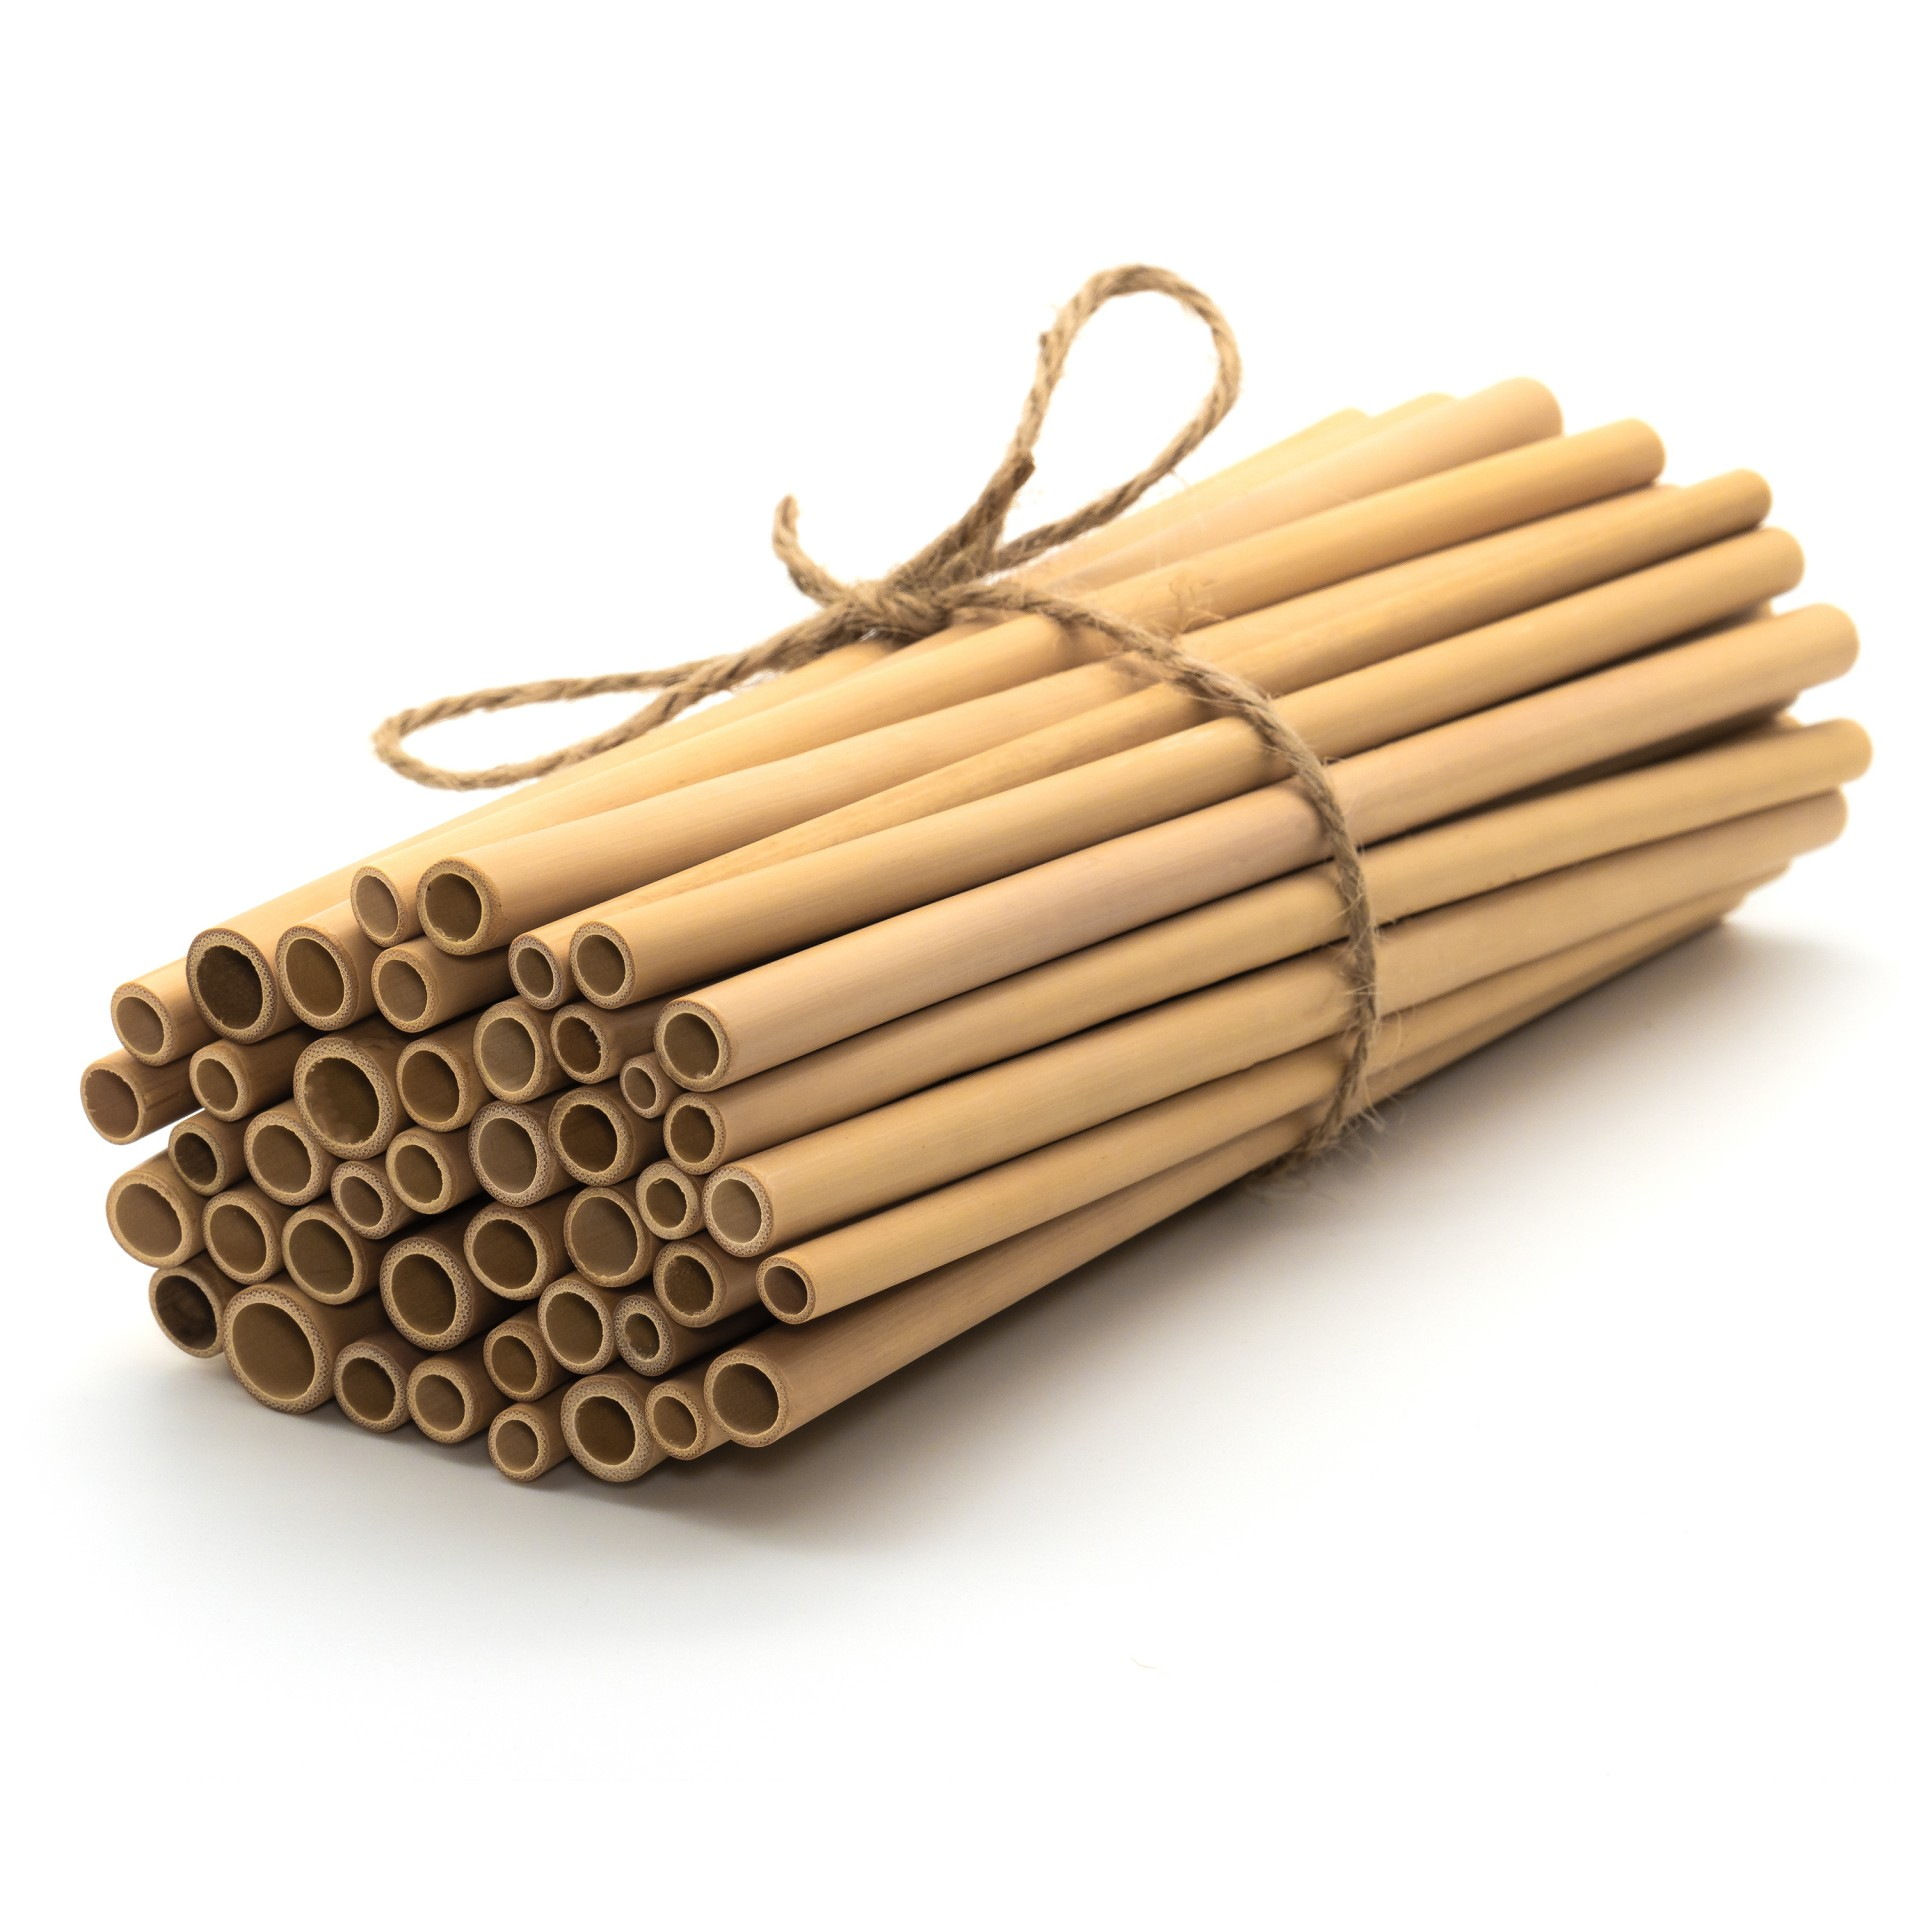 20 CANAS DE BAMBU NATURAL / NATURAL BAMBOO STRAWS _ Set of 20